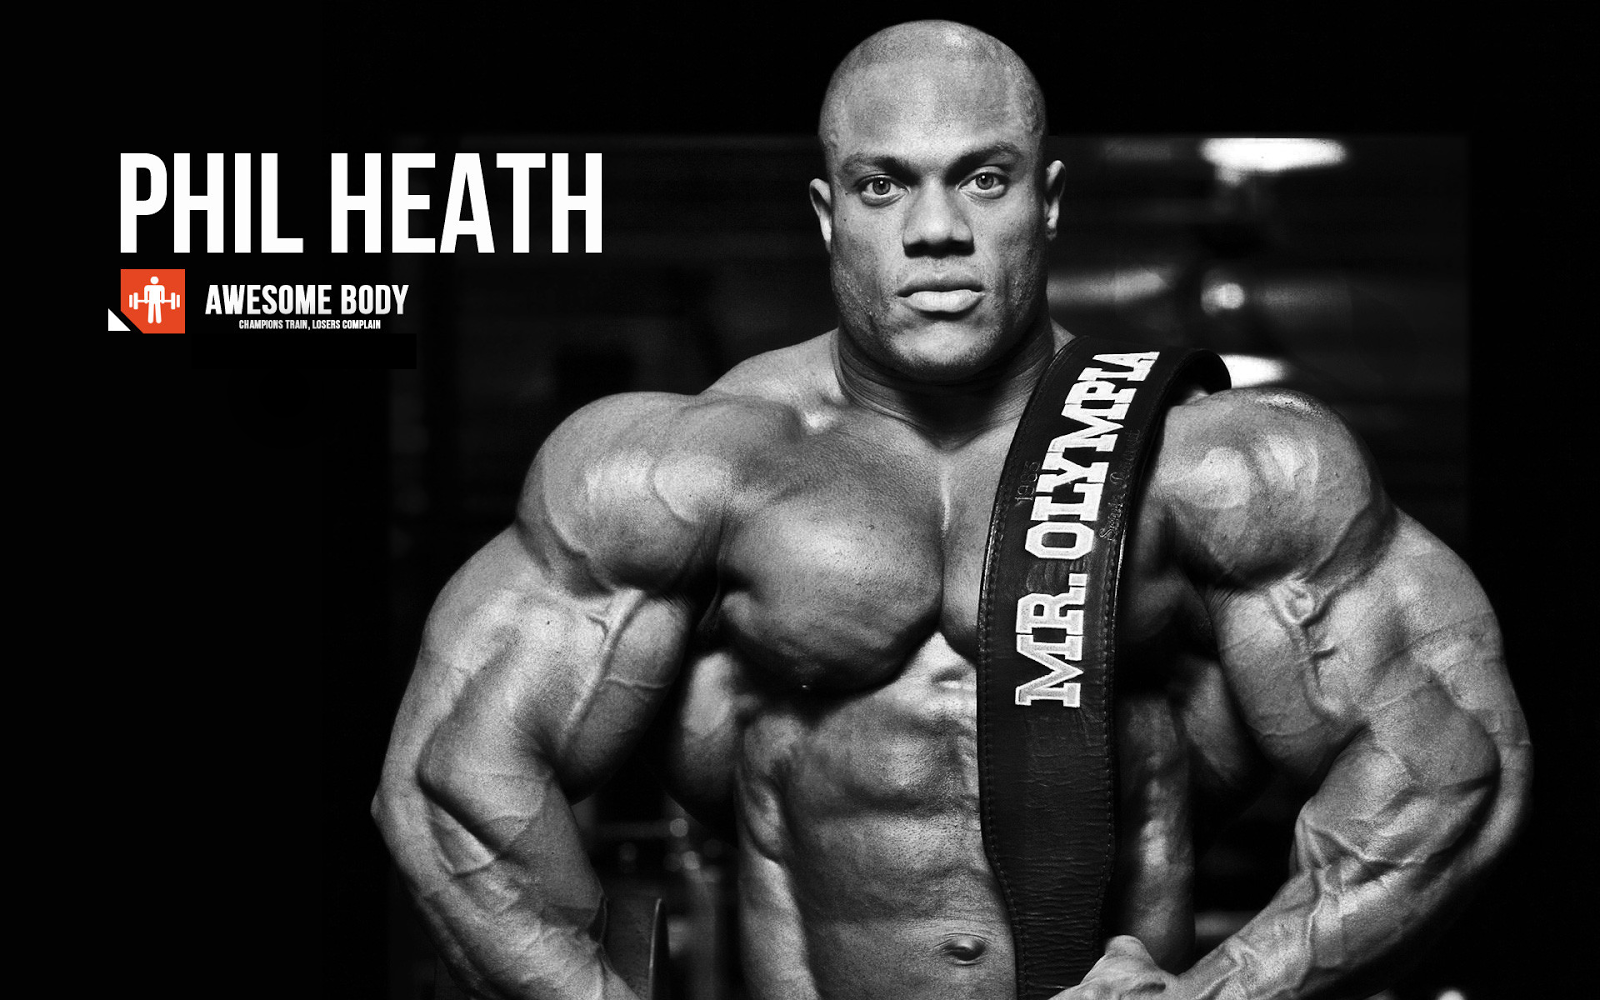 phill heath alldaybodybuilding.com